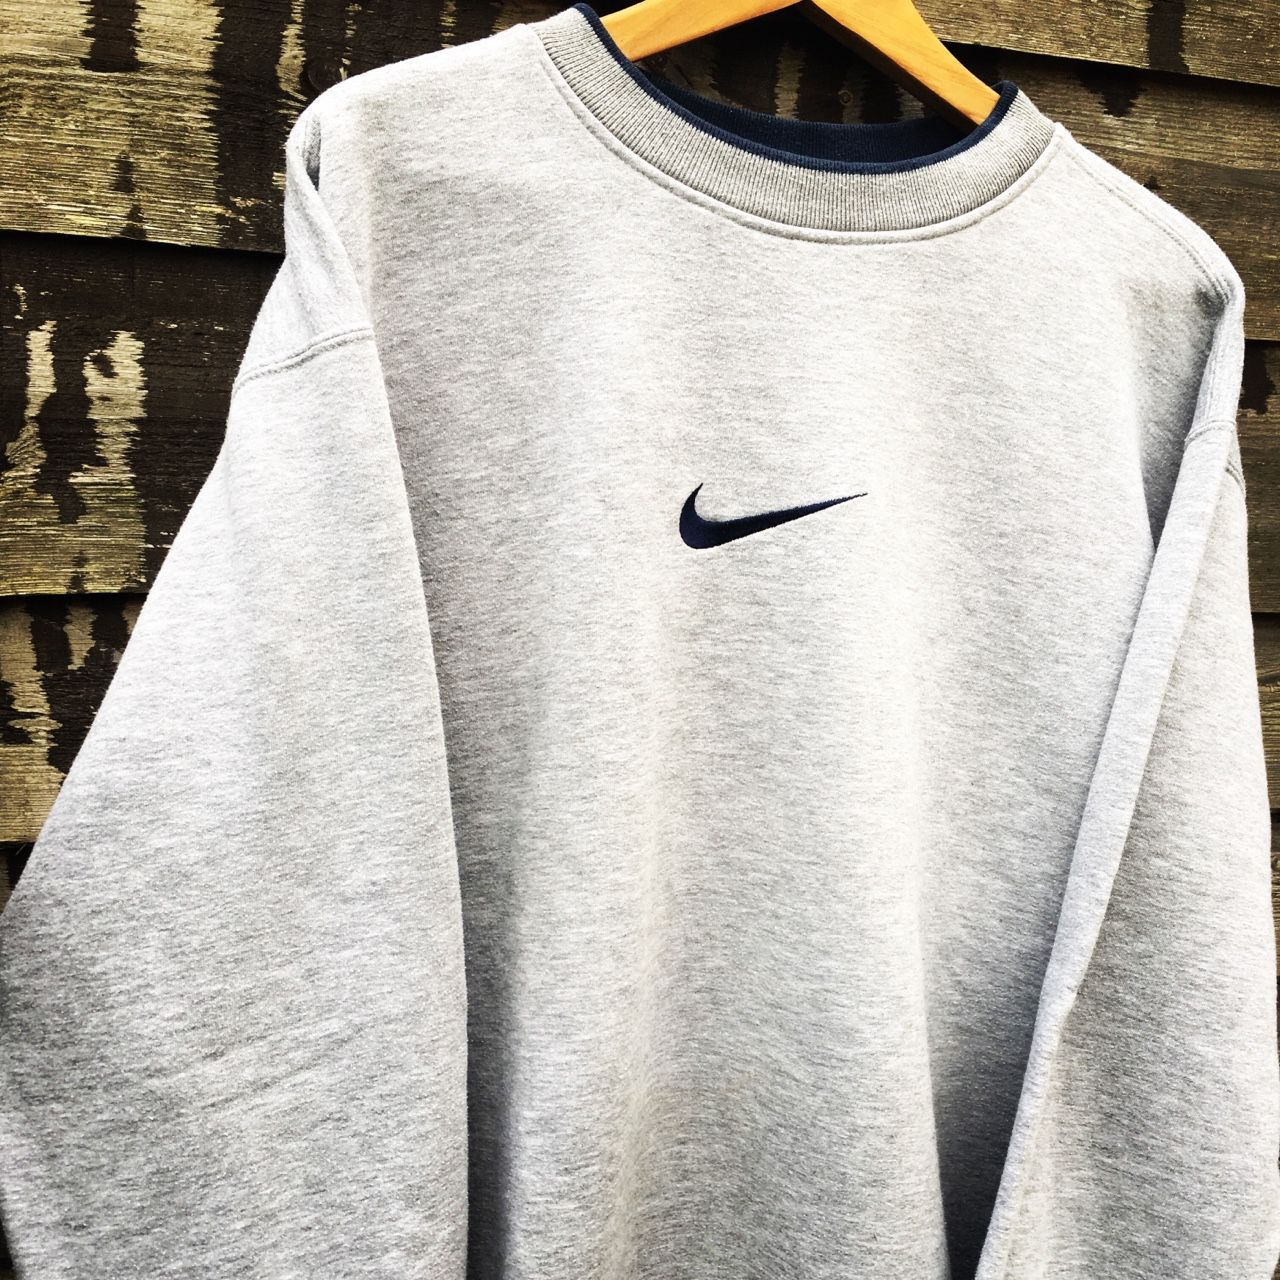 Retro Nike grey sweatshirt   size XL (fits L-XL)   condition 9 10   Nike  tick on middle of jumper!   free postage  nike  jumper  vintage  plain dbd33e129